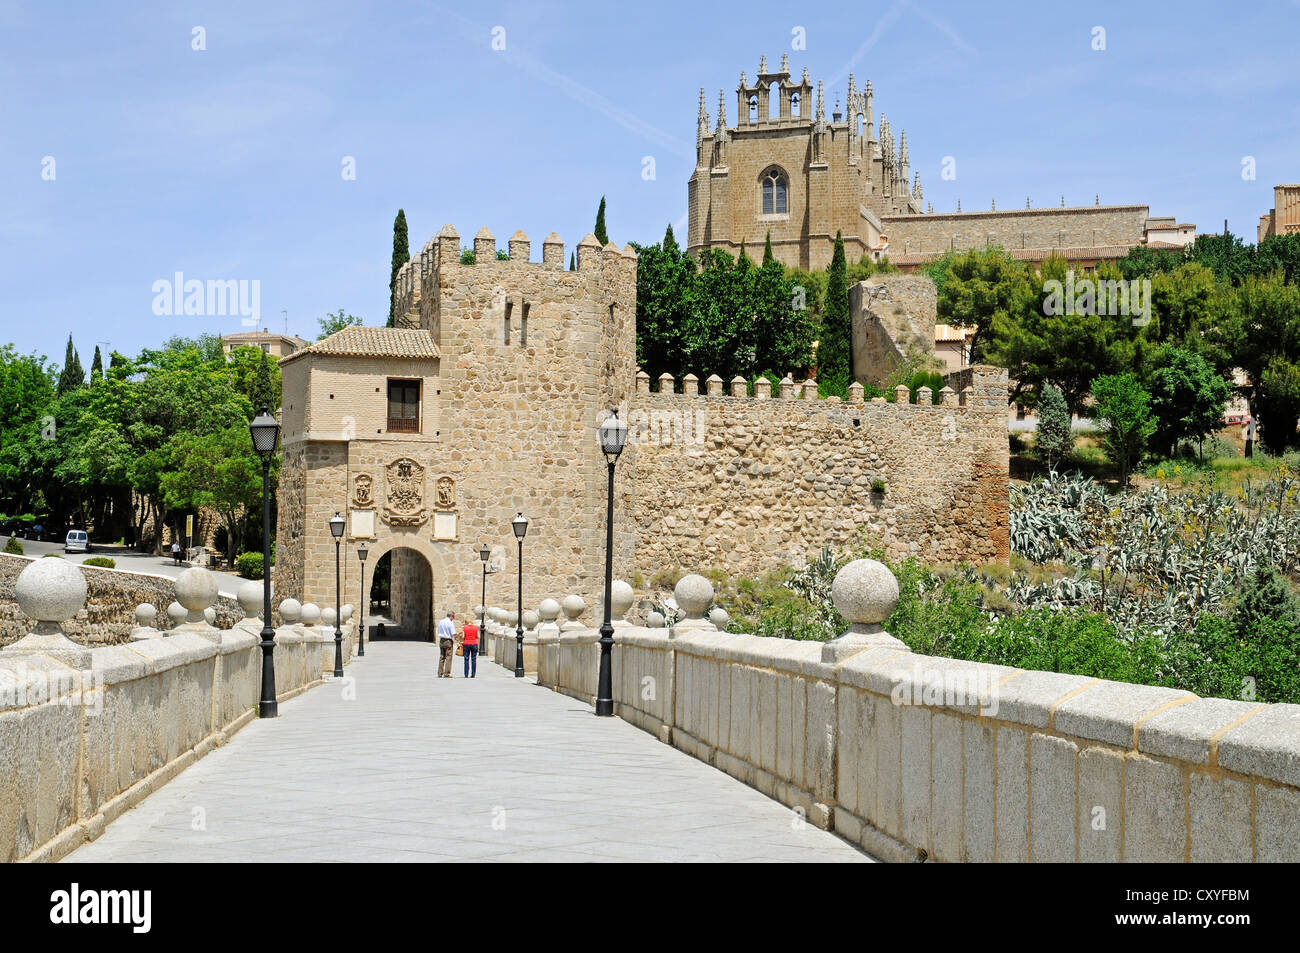 Puente de San Martin, bridge over the Tagus river, Rio Tajo, Toledo, Castile–La Mancha, Spain, Europe, PublicGround - Stock Image